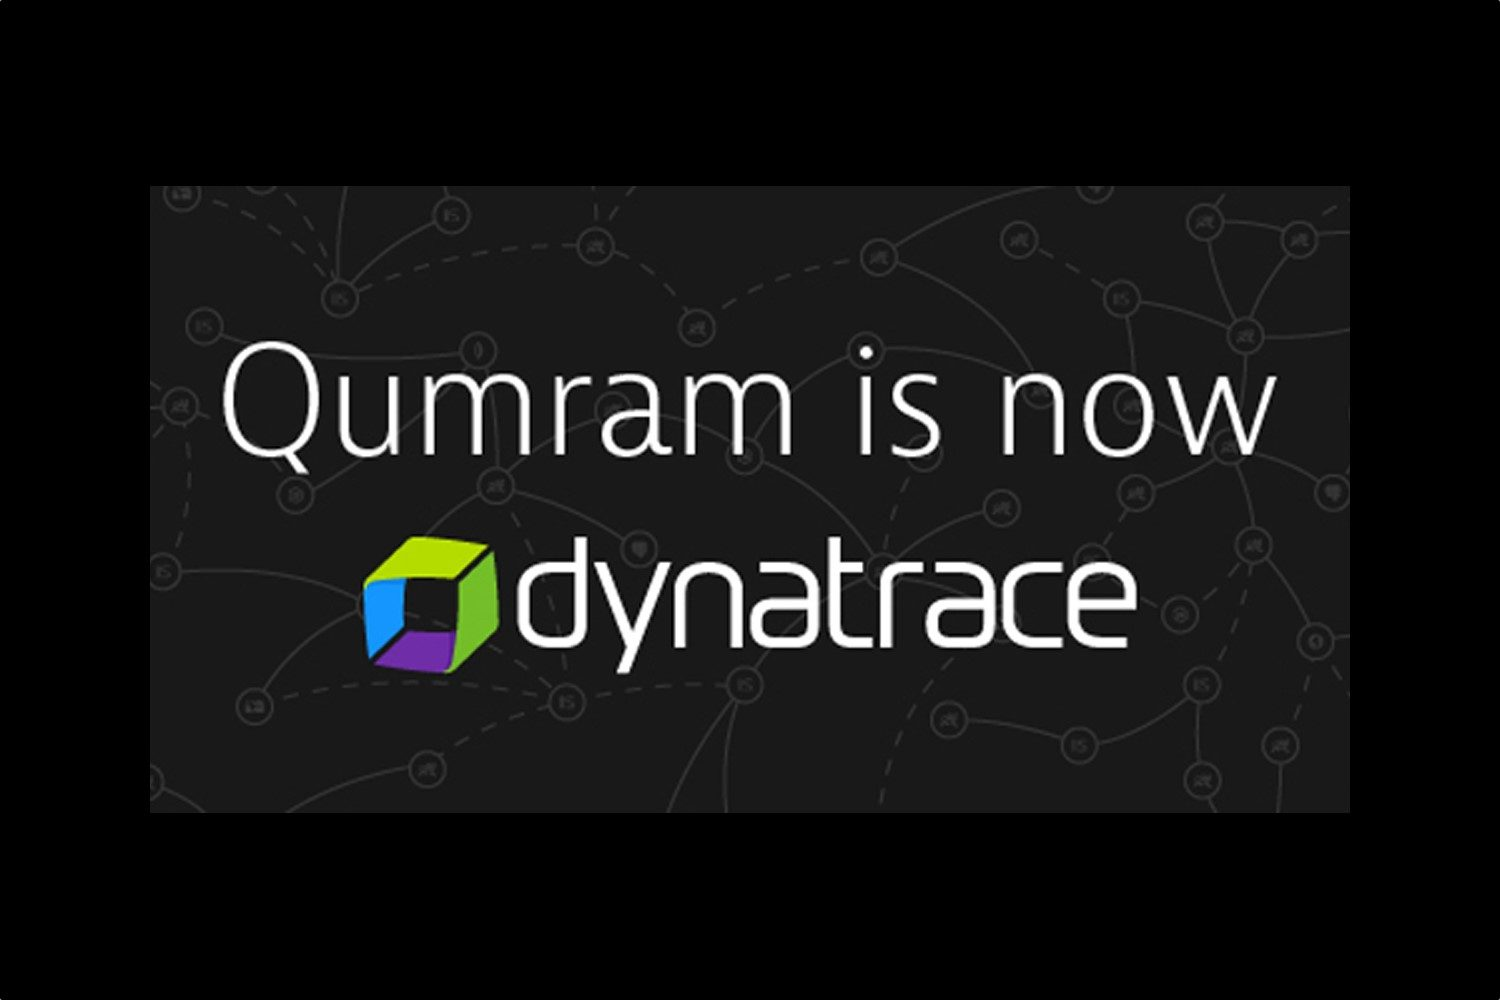 Qumram is now dynatrace